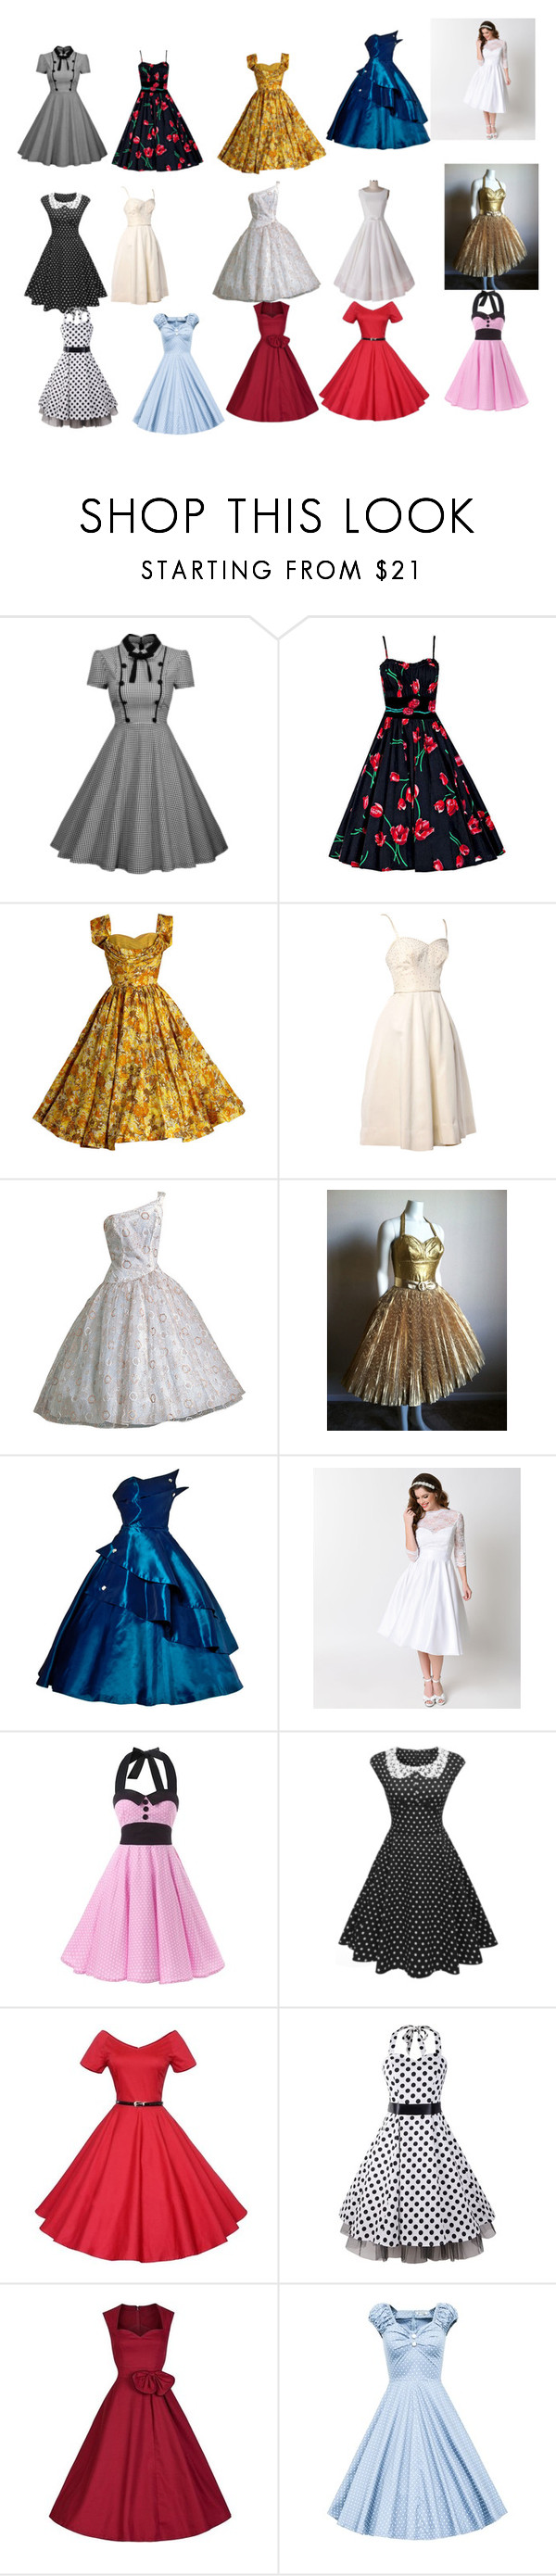 """""""vintage dresses"""" by hopehhlove on Polyvore featuring Heart of Haute and vintage"""